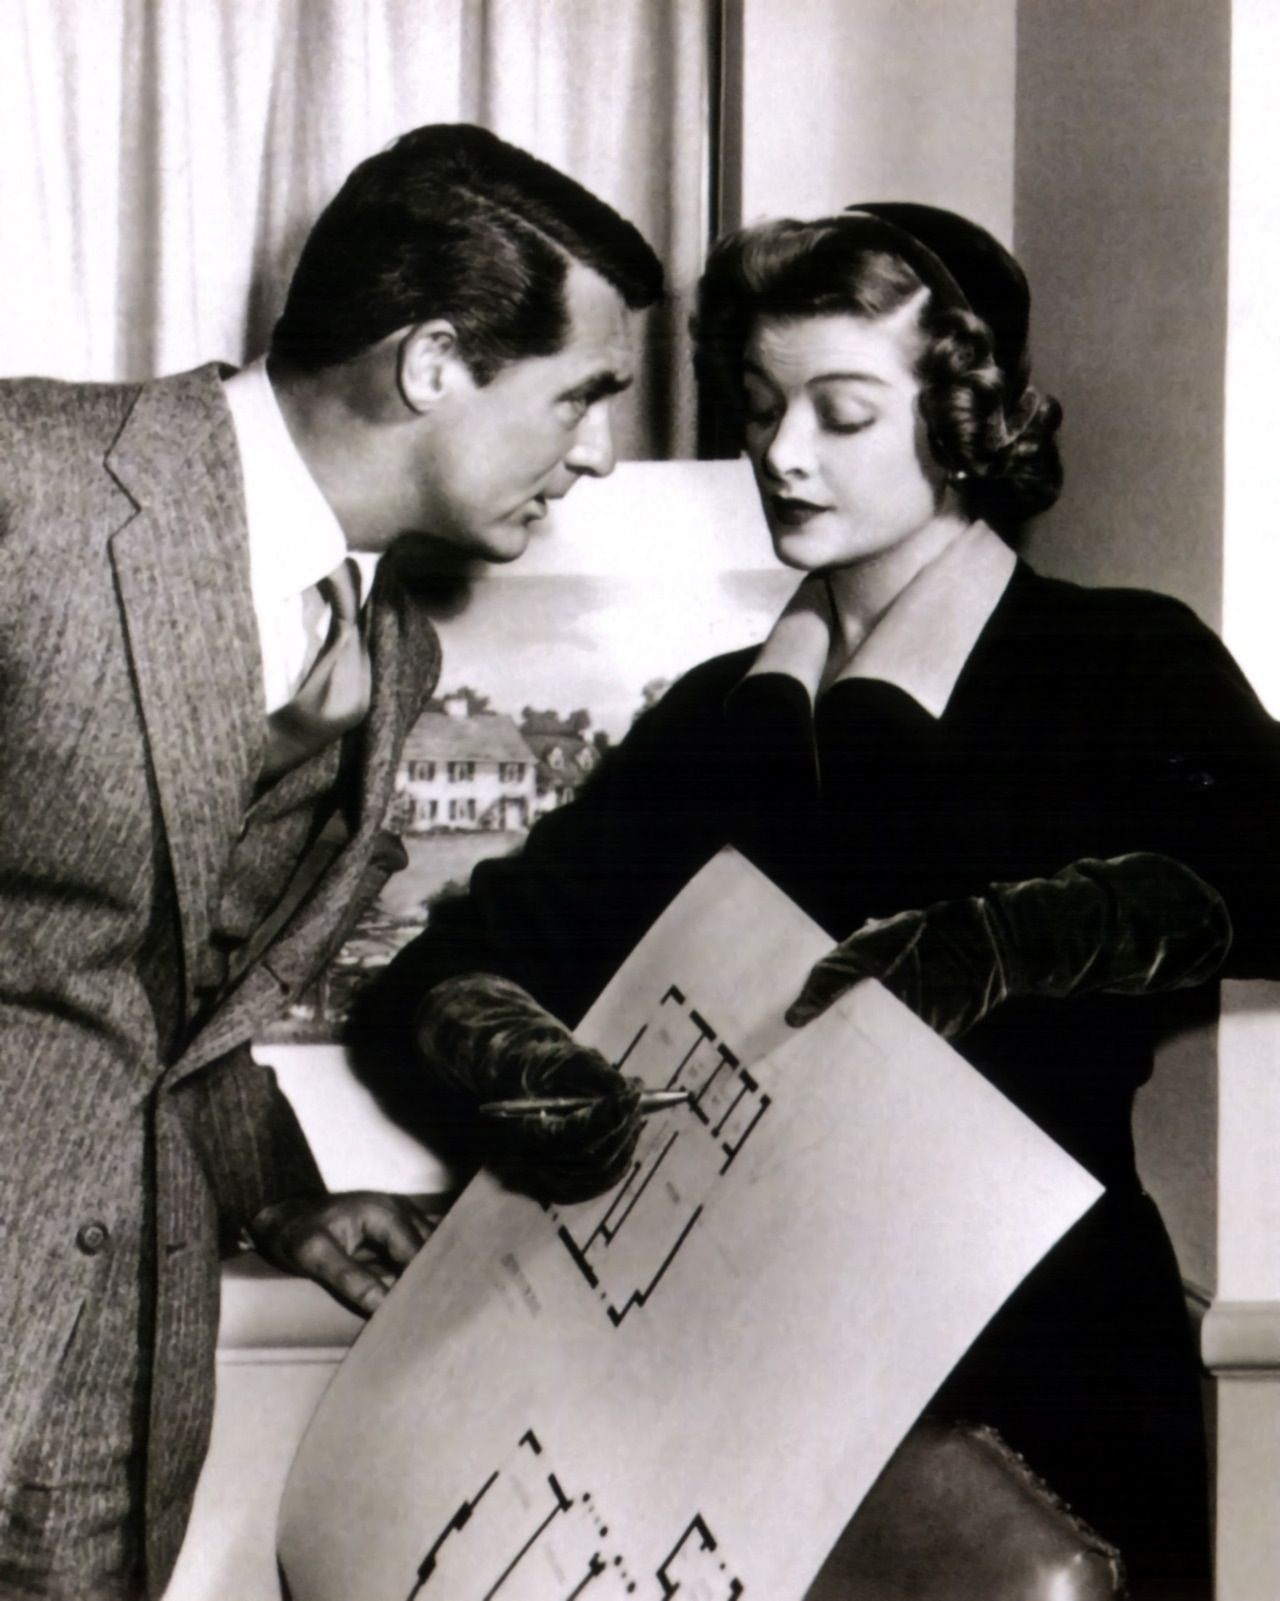 Cary Grant and Myrna Loy. Mr. Blandings Builds A Dream Home.--one of my favorite old movies!!!!